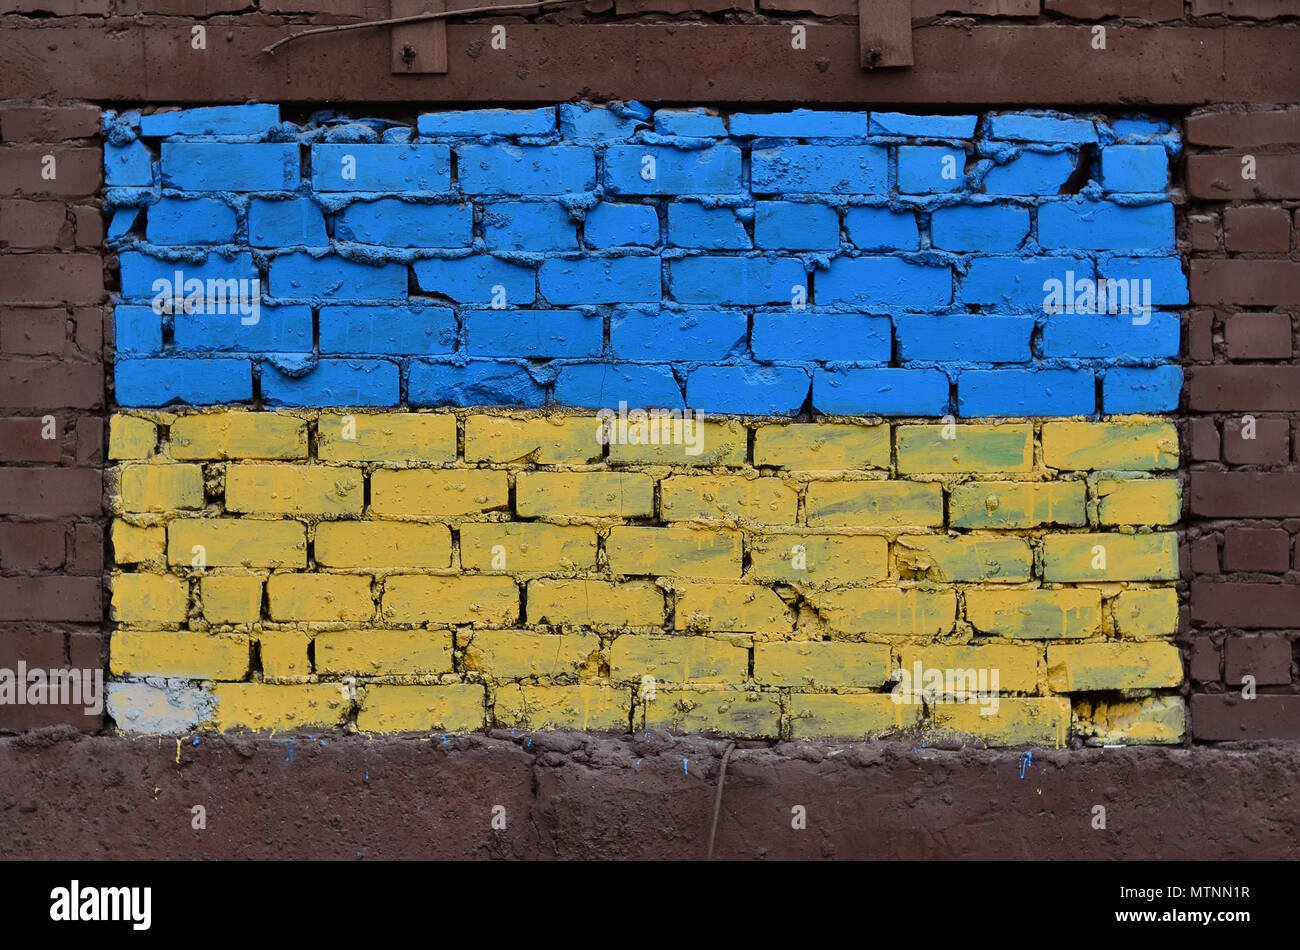 An old brick wall painted in the colors of the Ukrainian flag ...